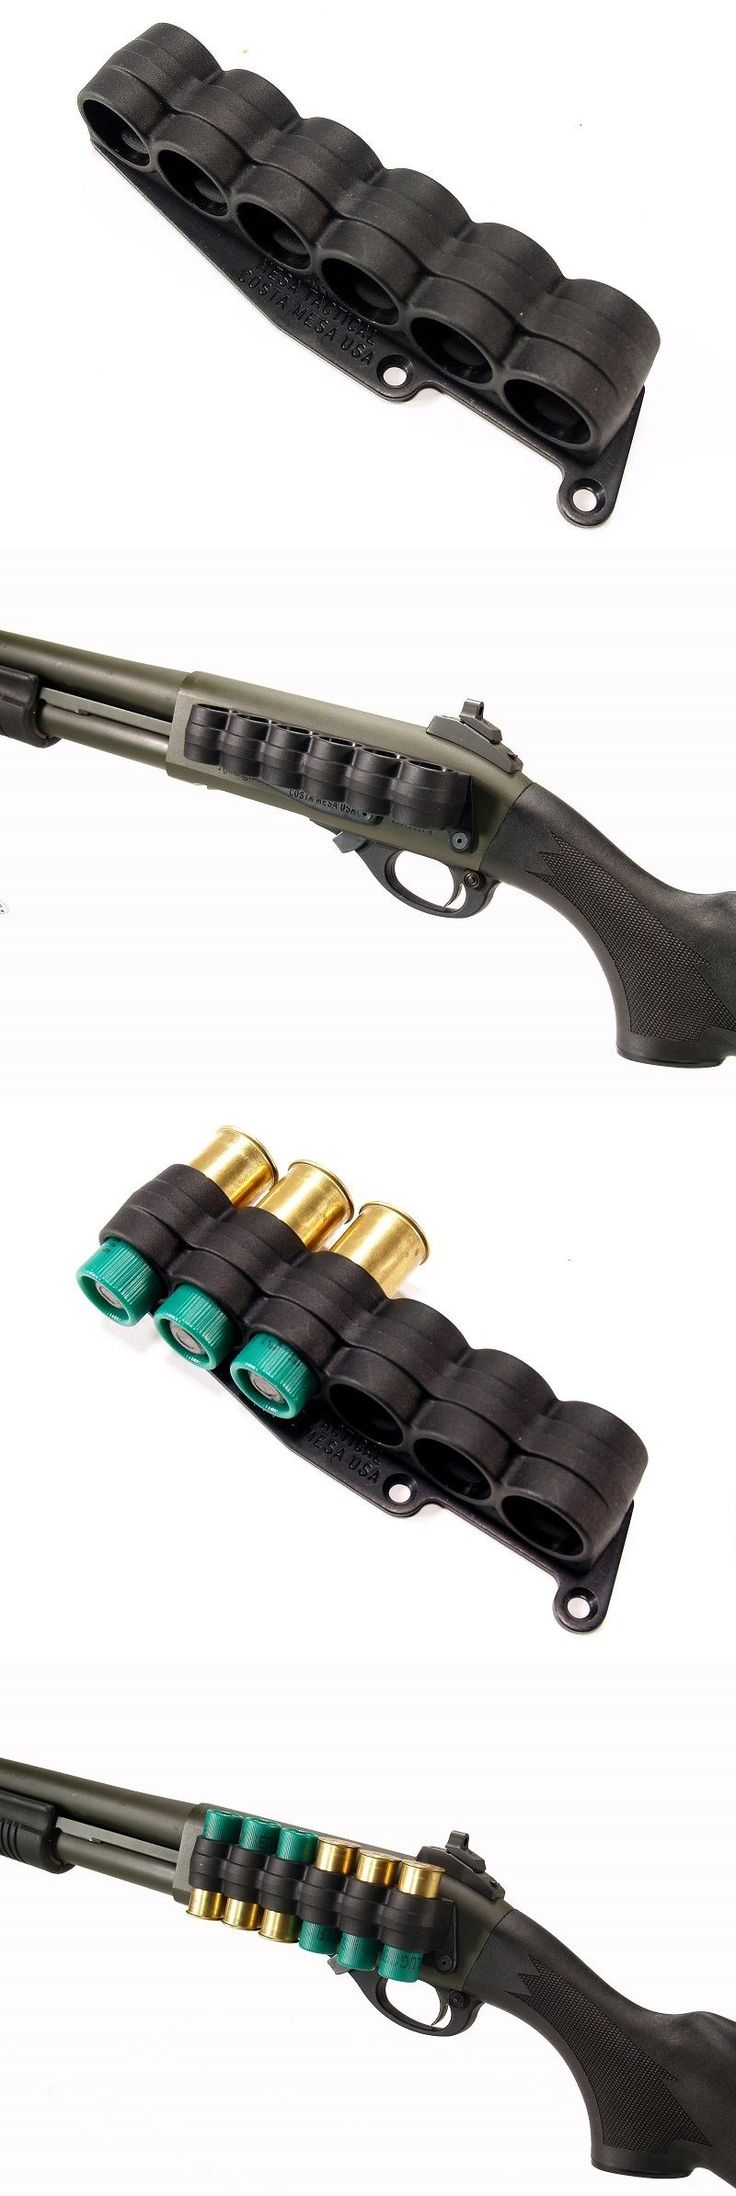 Ammunition Belts and Bandoliers 177884: Mesa Tactical Sureshell® Polymer Carrier For Remington (6-Shell, 12-Ga) 94740 -> BUY IT NOW ONLY: $44.99 on eBay!